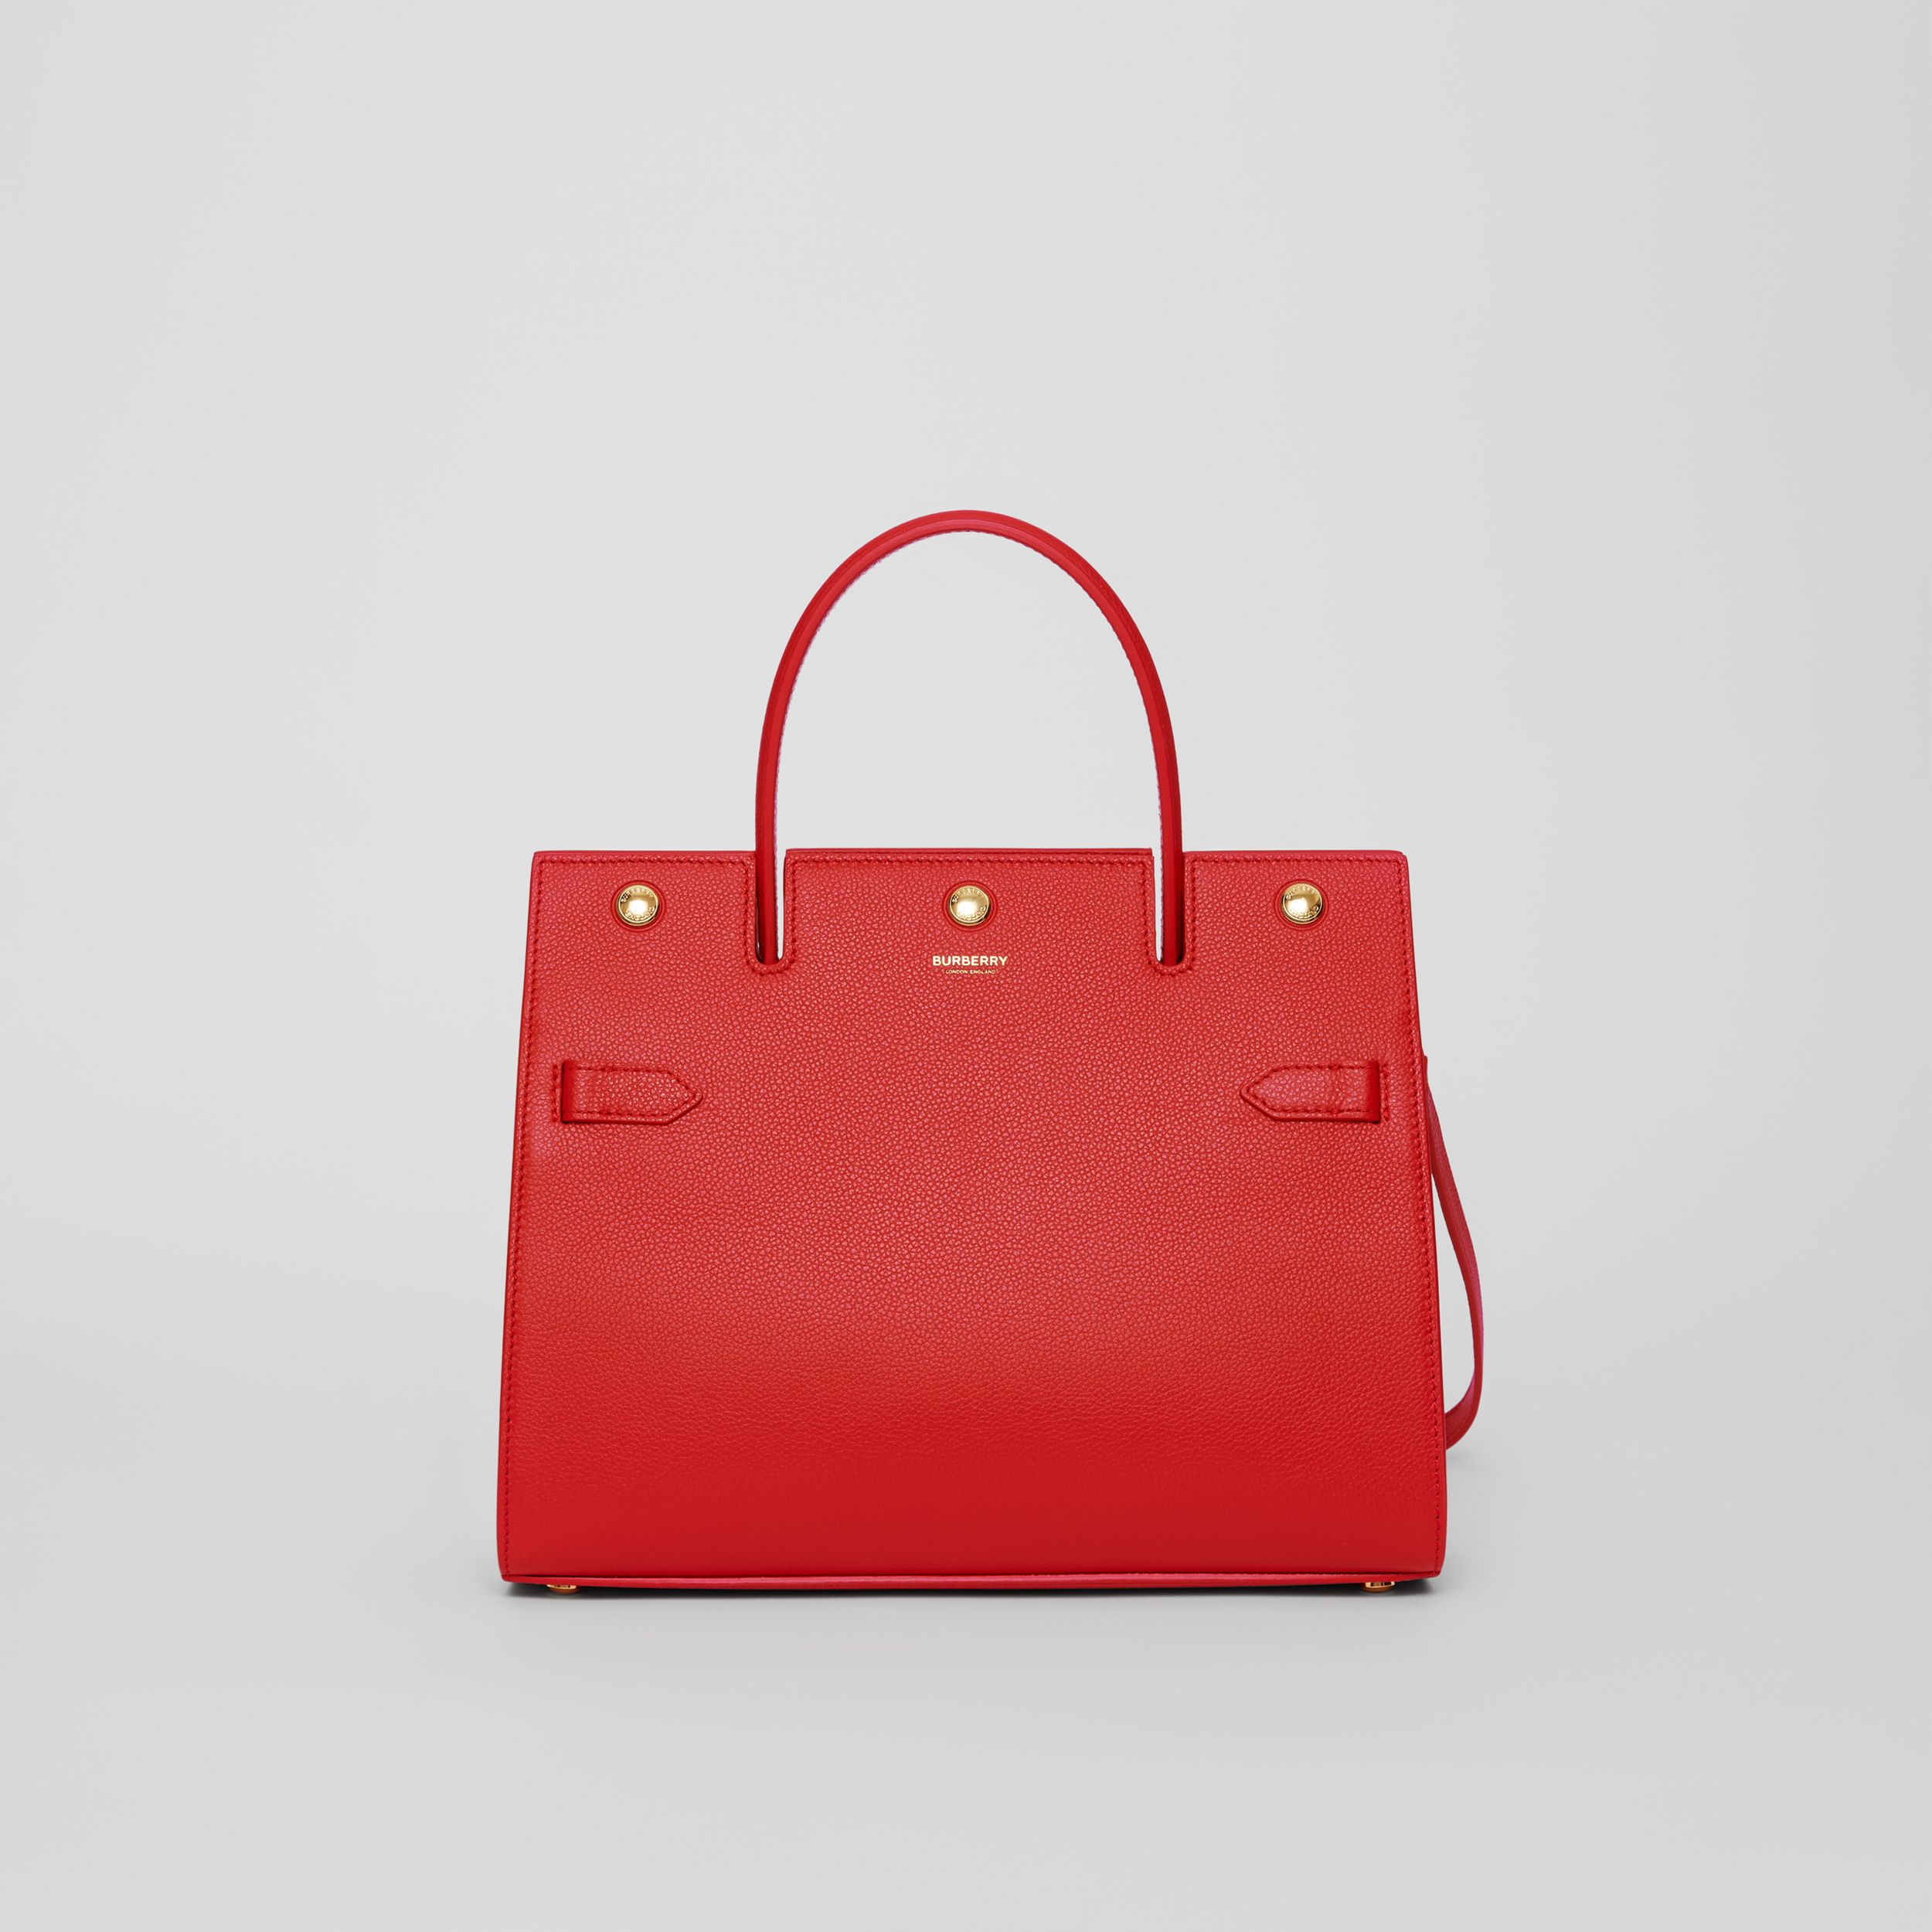 Small Leather Title Bag in Bright Red - Women | Burberry - 1